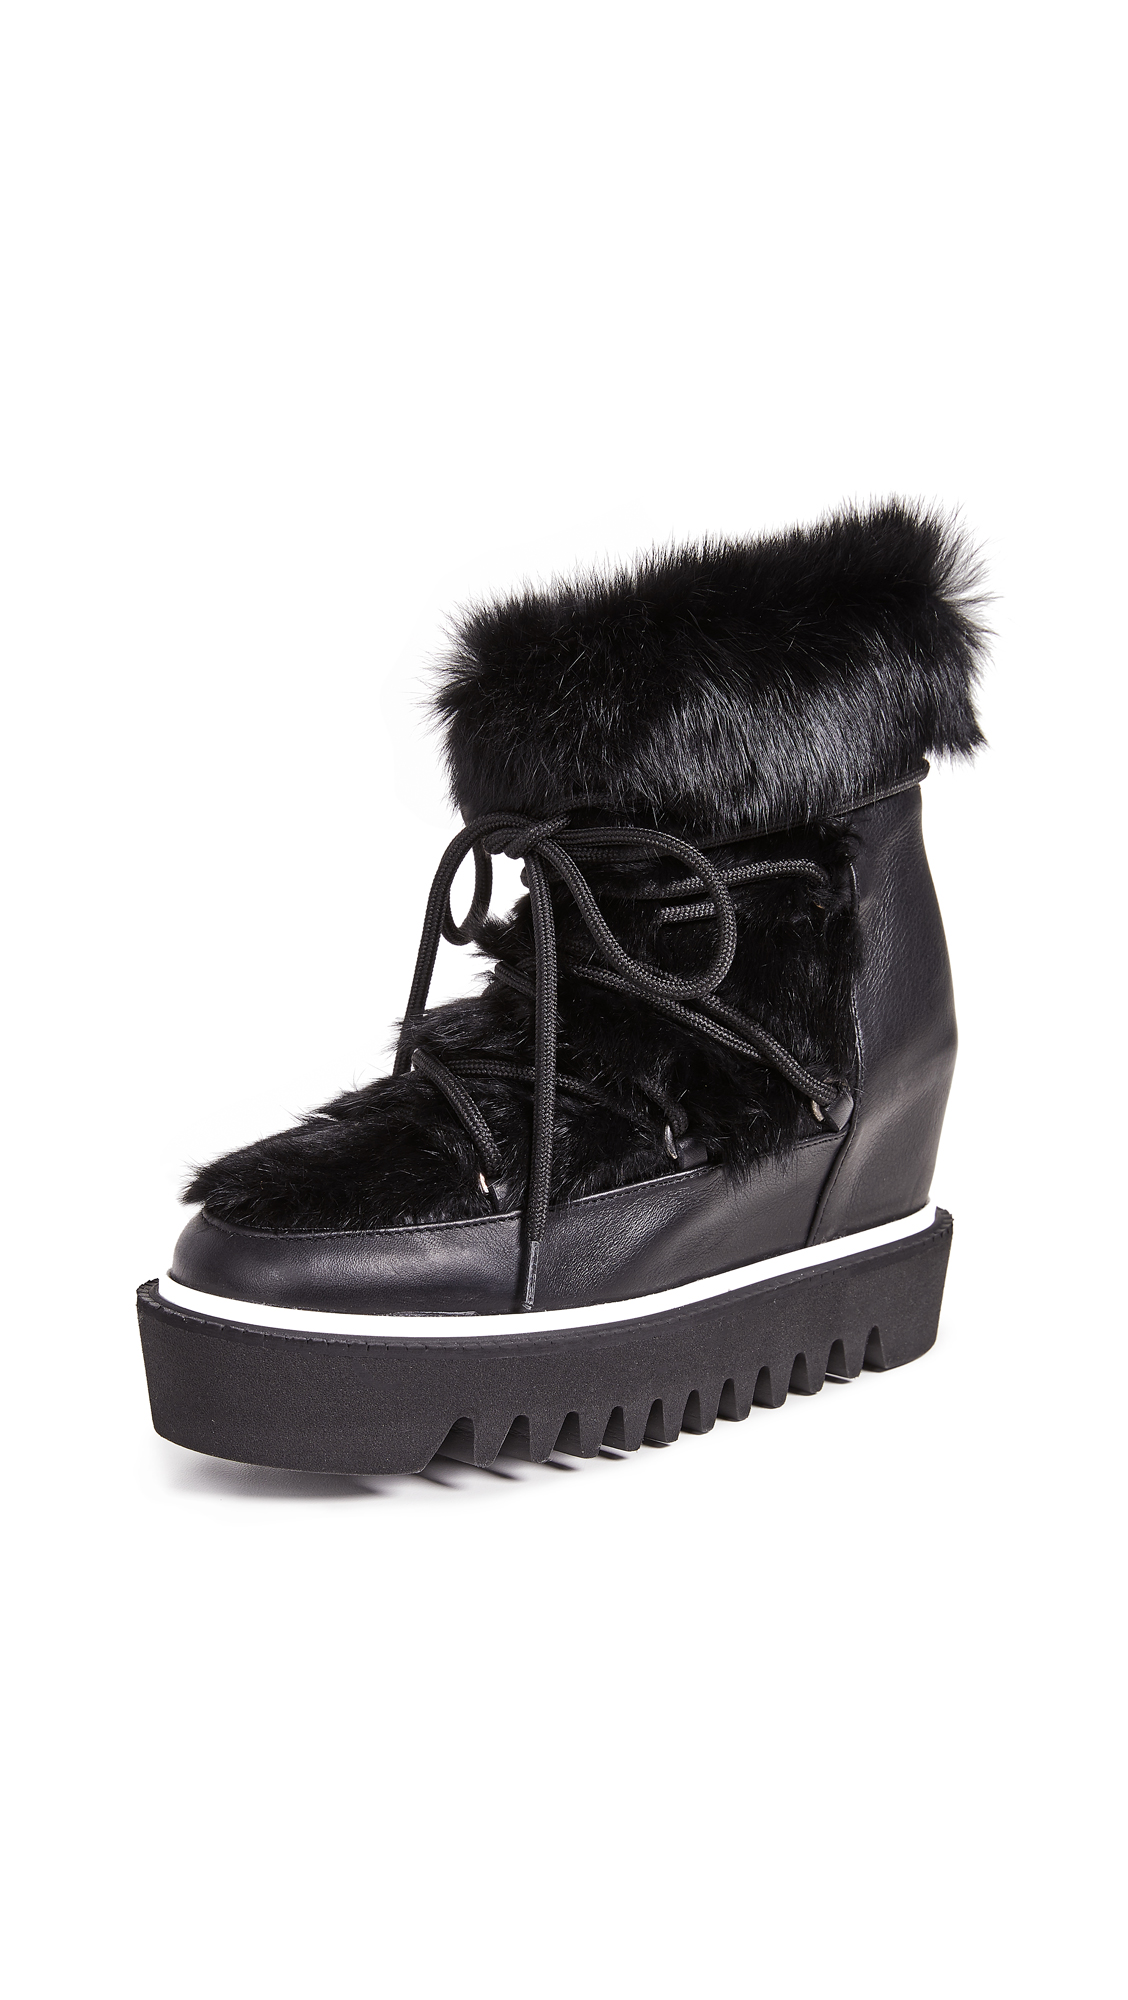 PALOMA BARCELÓ Triangle Boots in Black